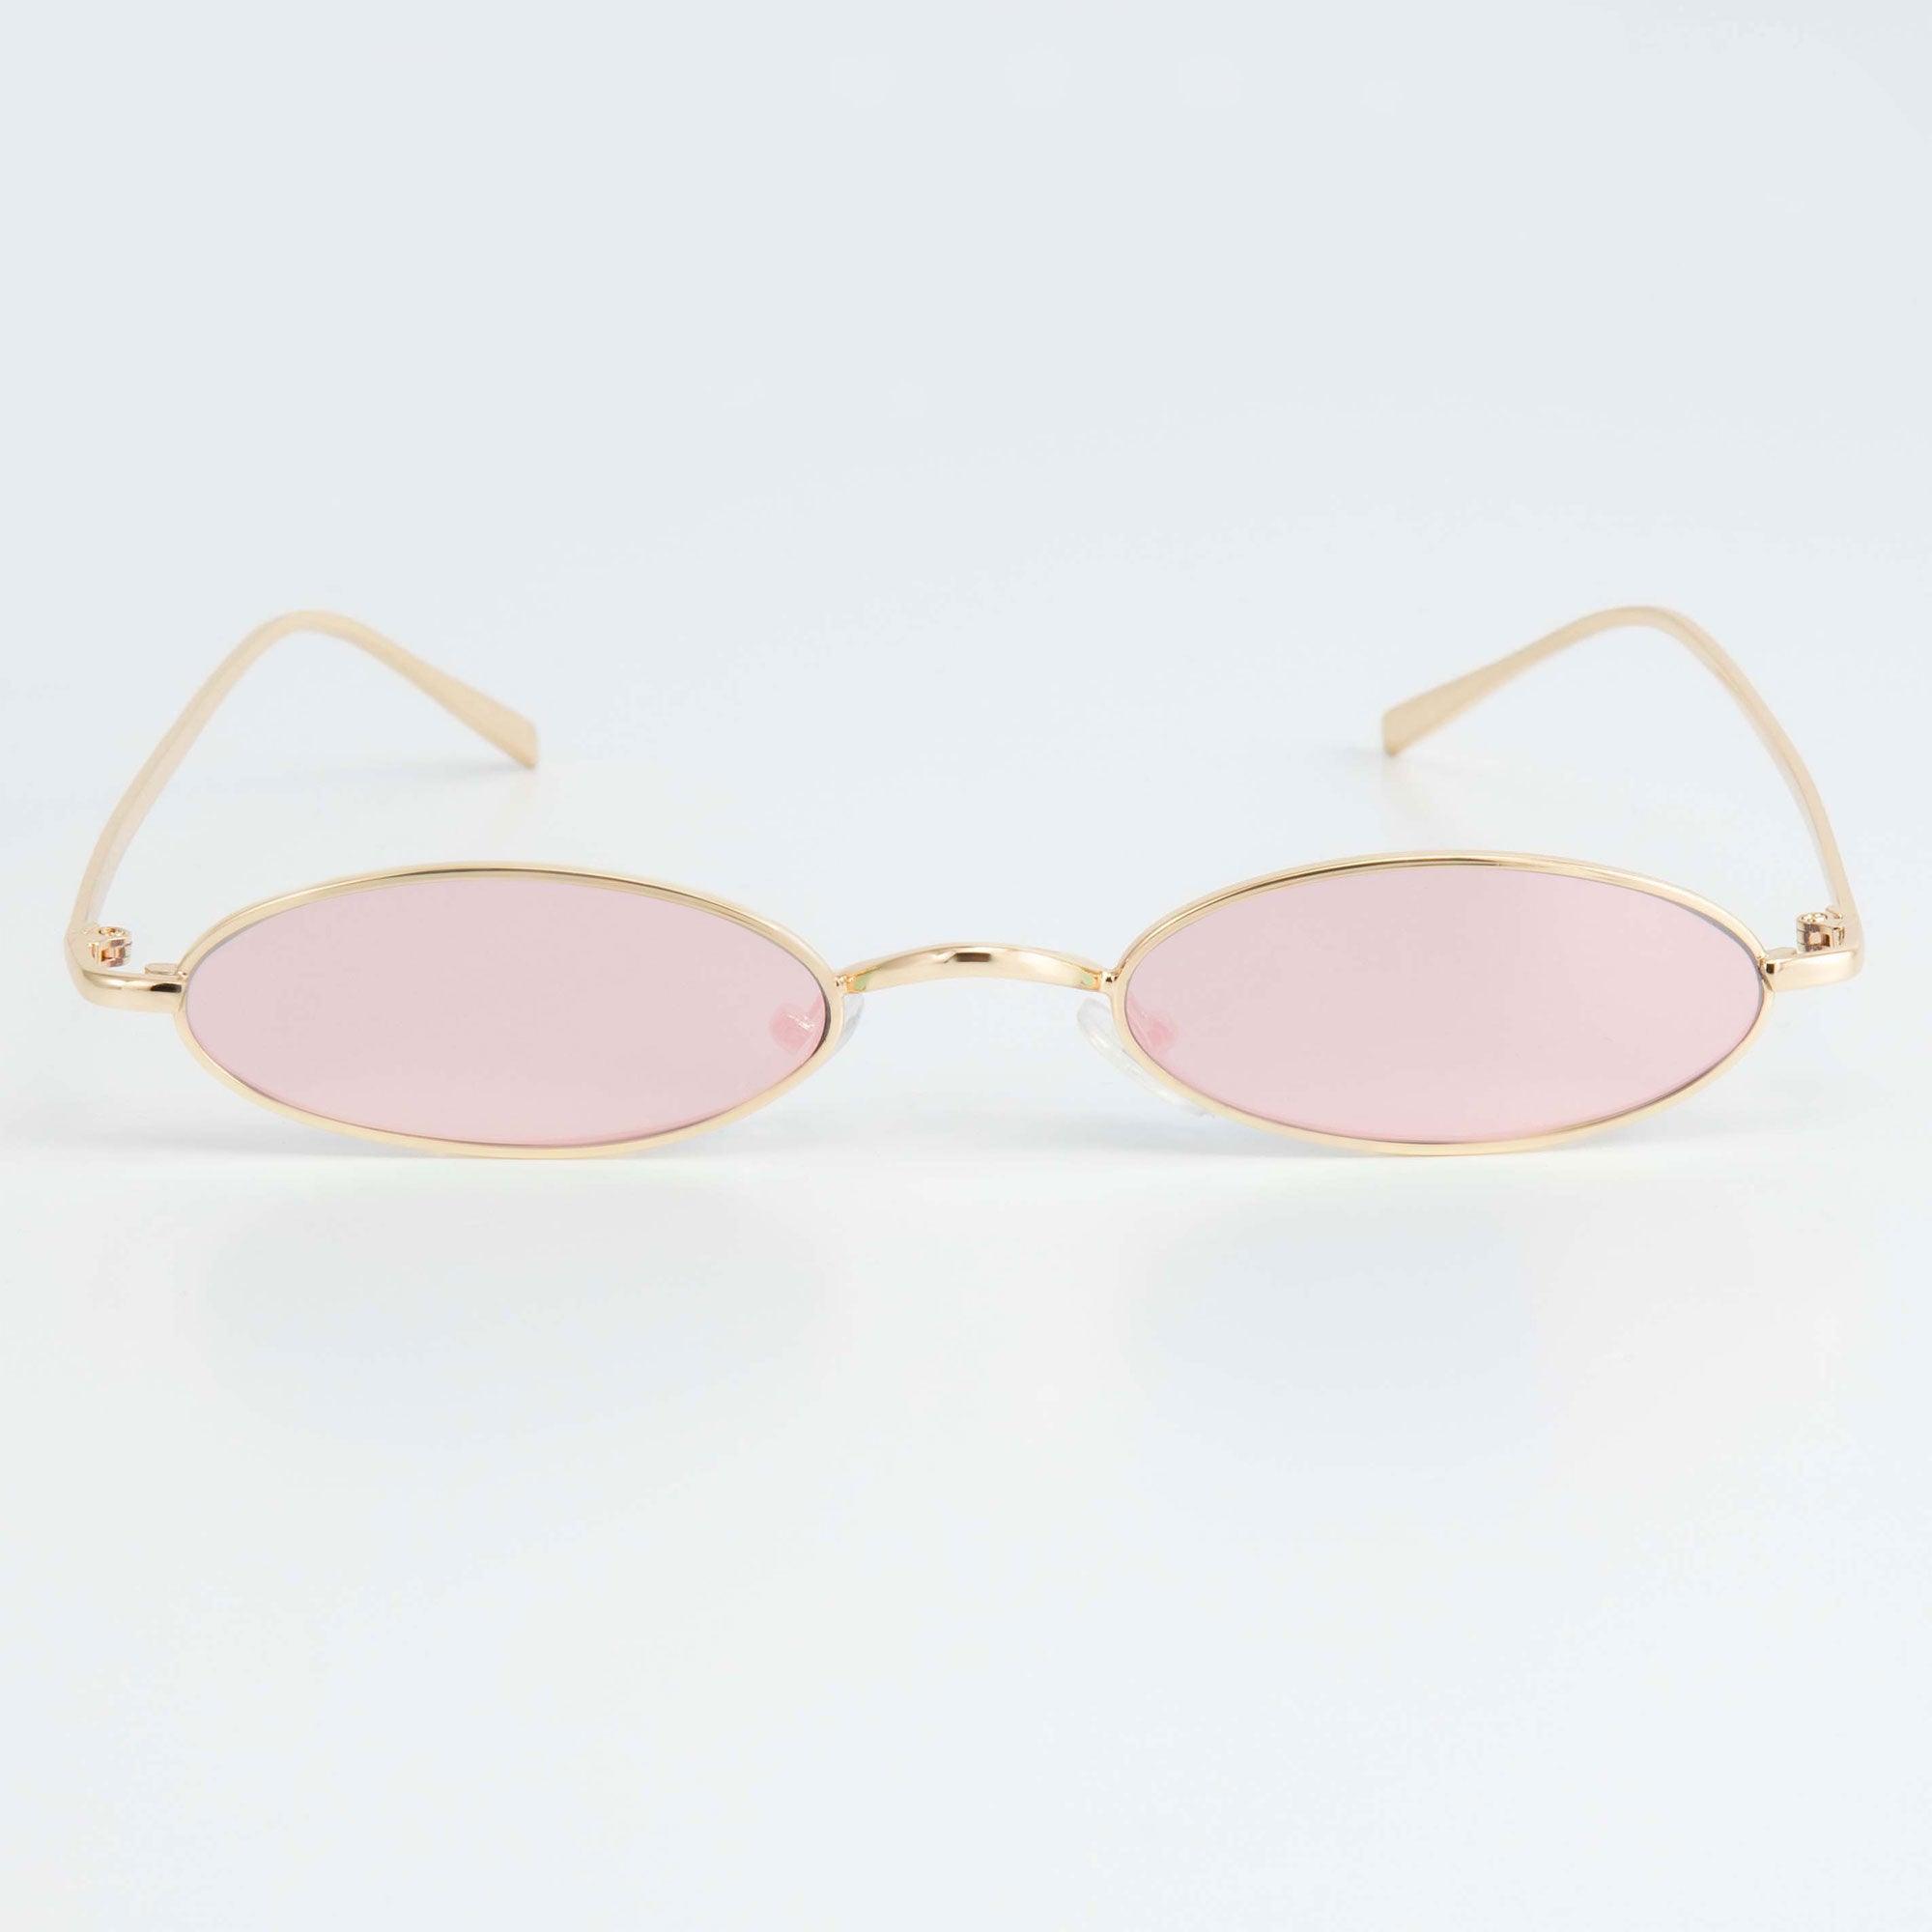 SLIM RAVE SUNGLASSES INCL. CHAIN - PINK / GOLD